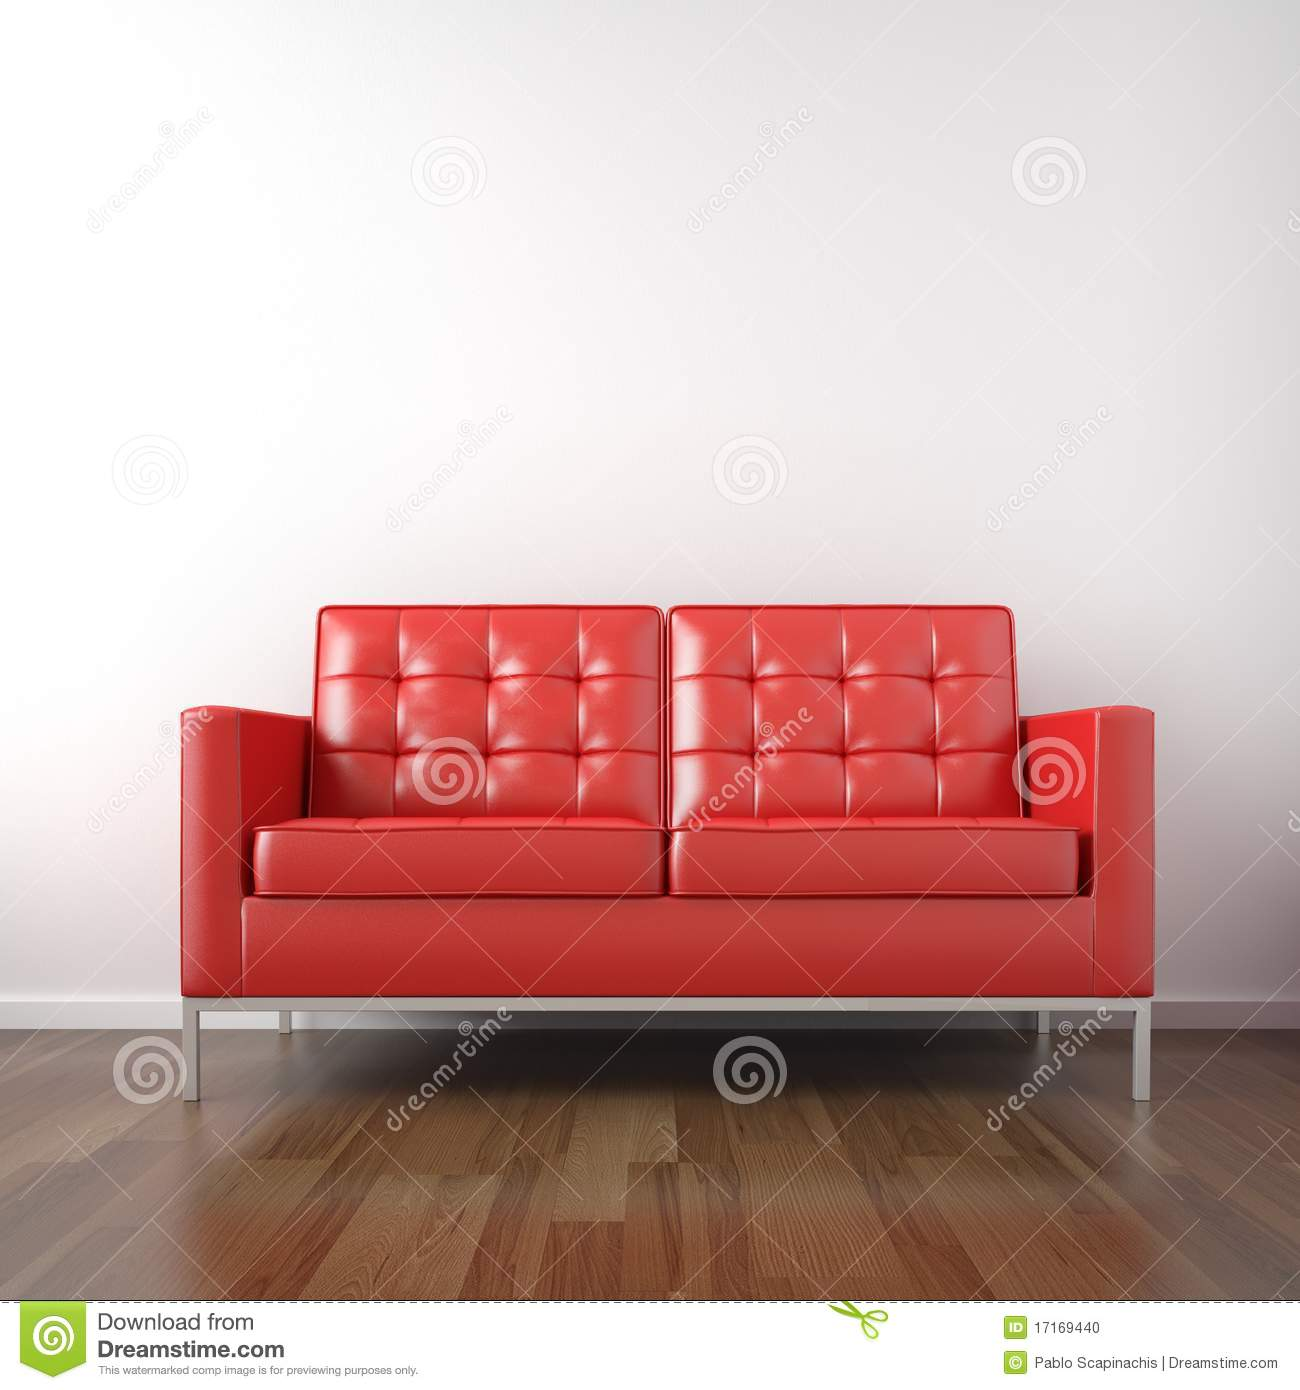 decorating of room ideas modern couch for styling living red tacoma image blog maxwells